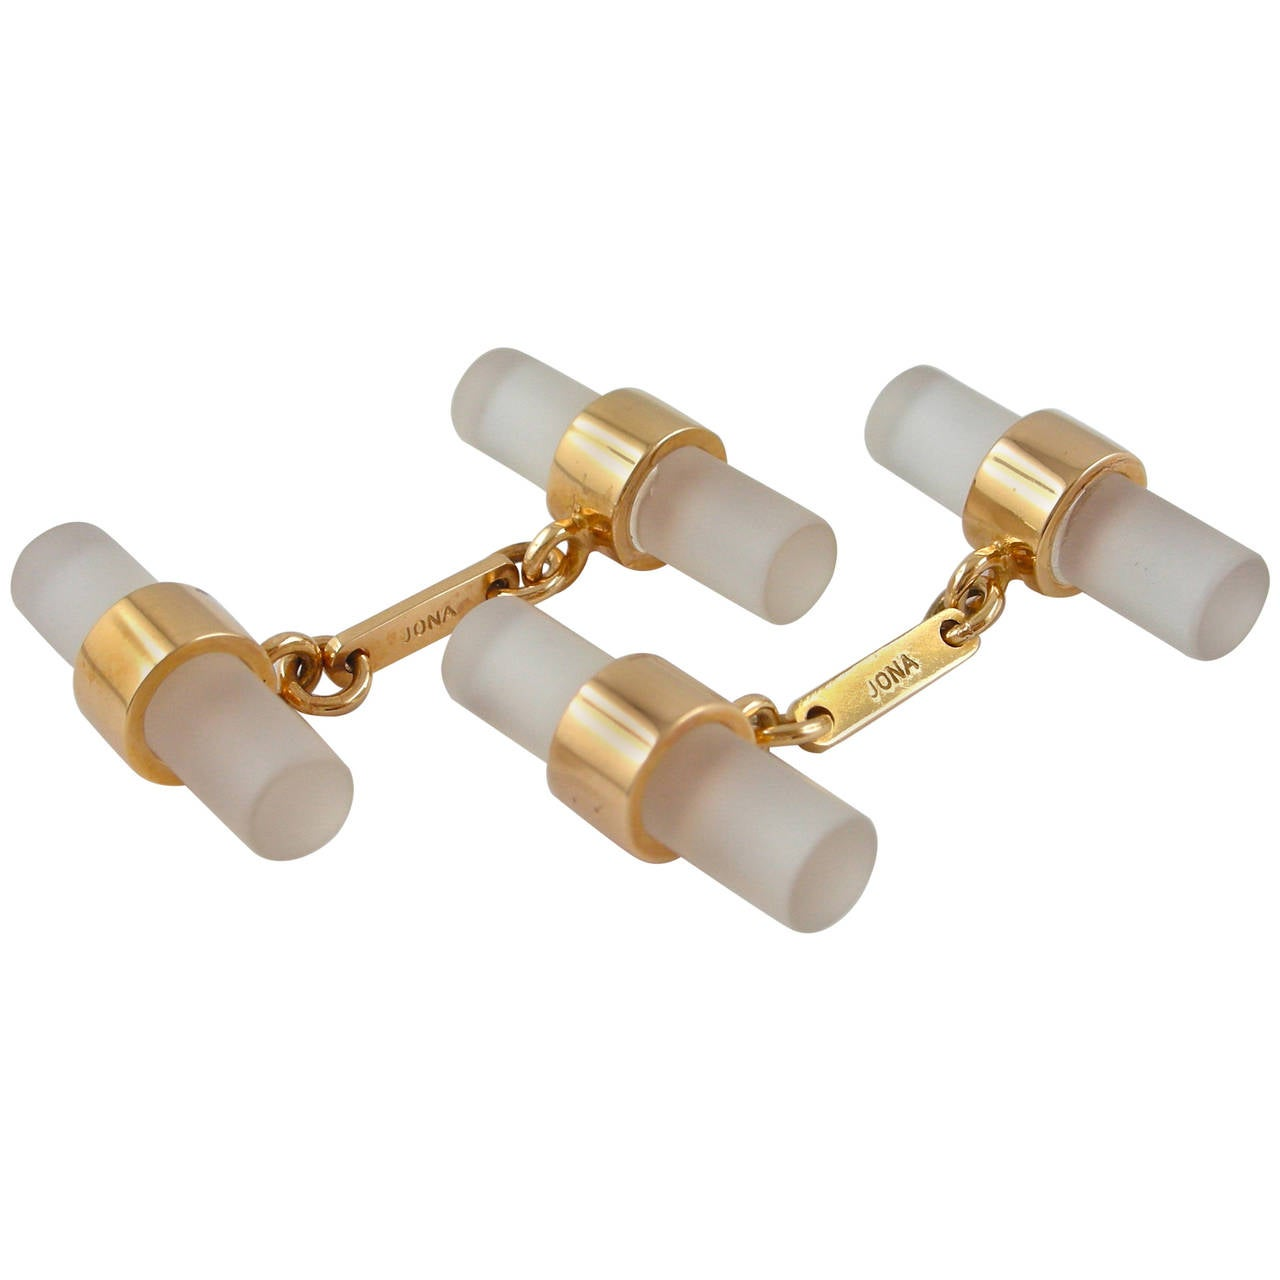 Rock Crystal 18 karat rose gold bar cufflinks designed by Jona and hand made in Italy. Marked Jona. Measurements: 2043 mm x 740 mm (each bar). All Jona jewelry is new and has never been previously owned or worn. Each item will arrive at your door